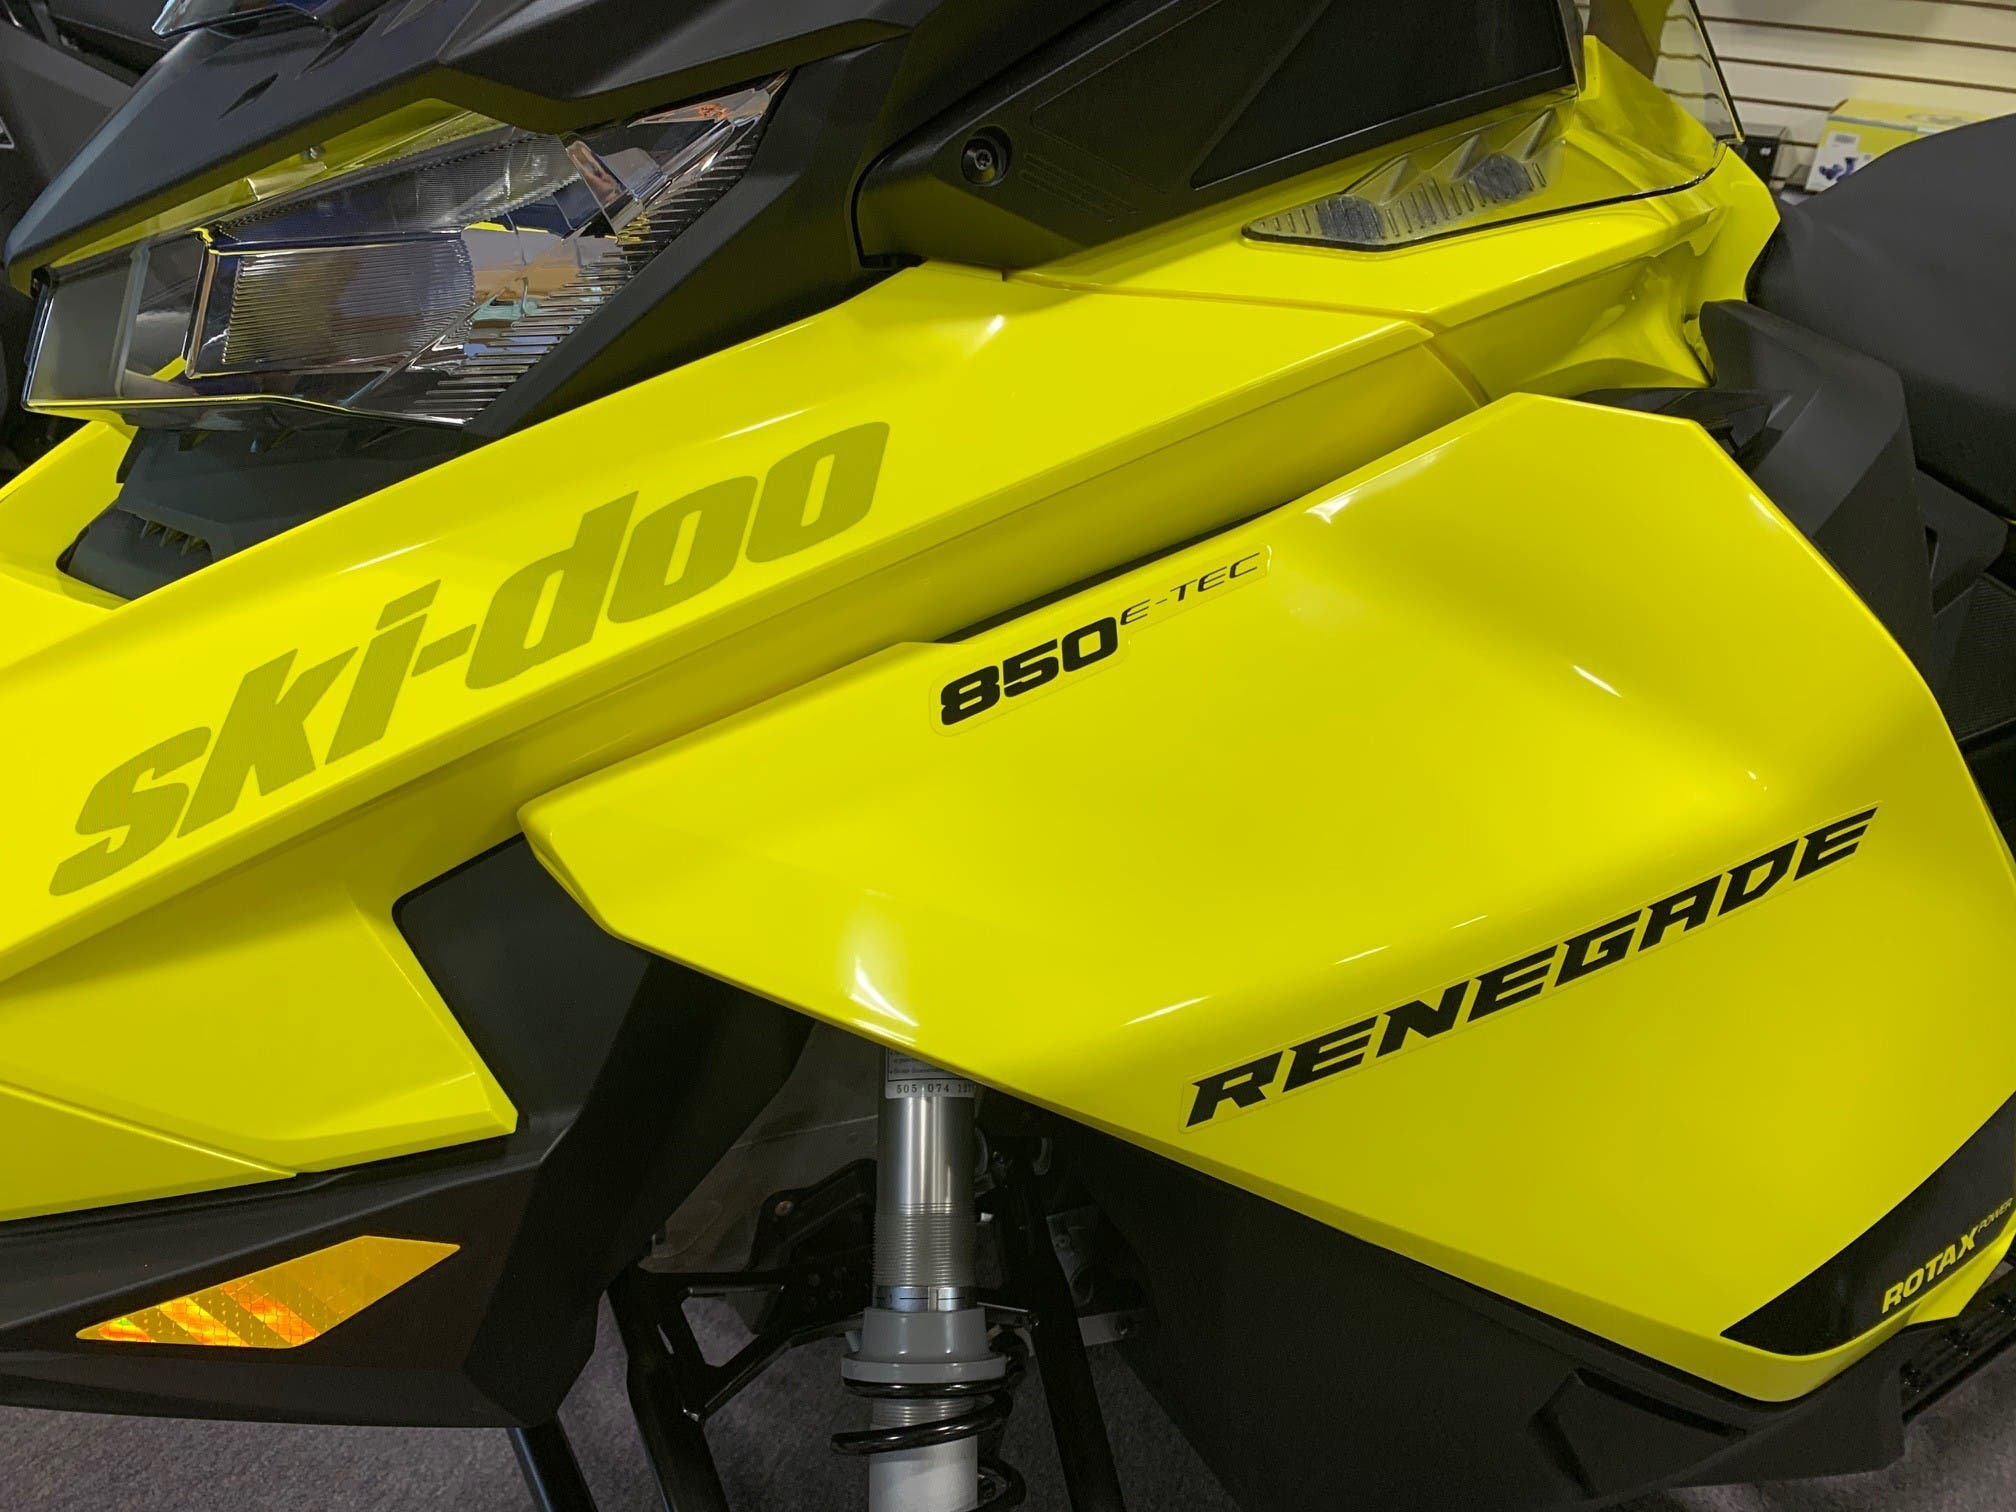 2021 Ski Doo boat for sale, model of the boat is RENEGADE ADR 850 ETEC ES & Image # 3 of 4